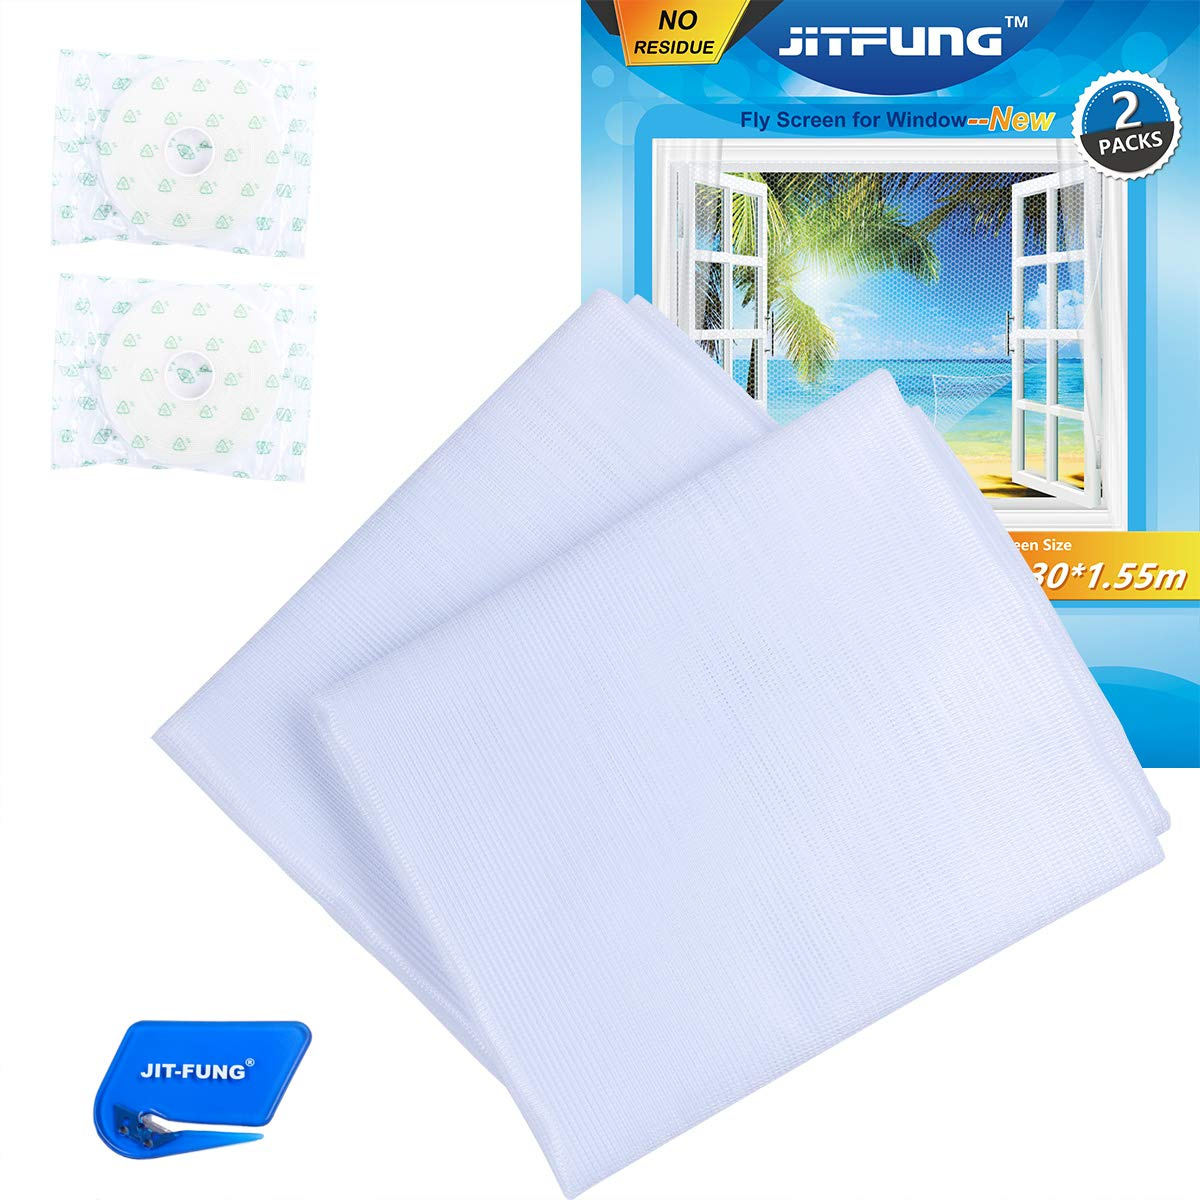 JIT-FUNG Mosquito Net for Windows-2 Packs [NO Residue], Fly Screen Insect  Mesh 1 3m x 1 55m, with 2 Rolls Self-Adhesive Tapes, White, 3 0